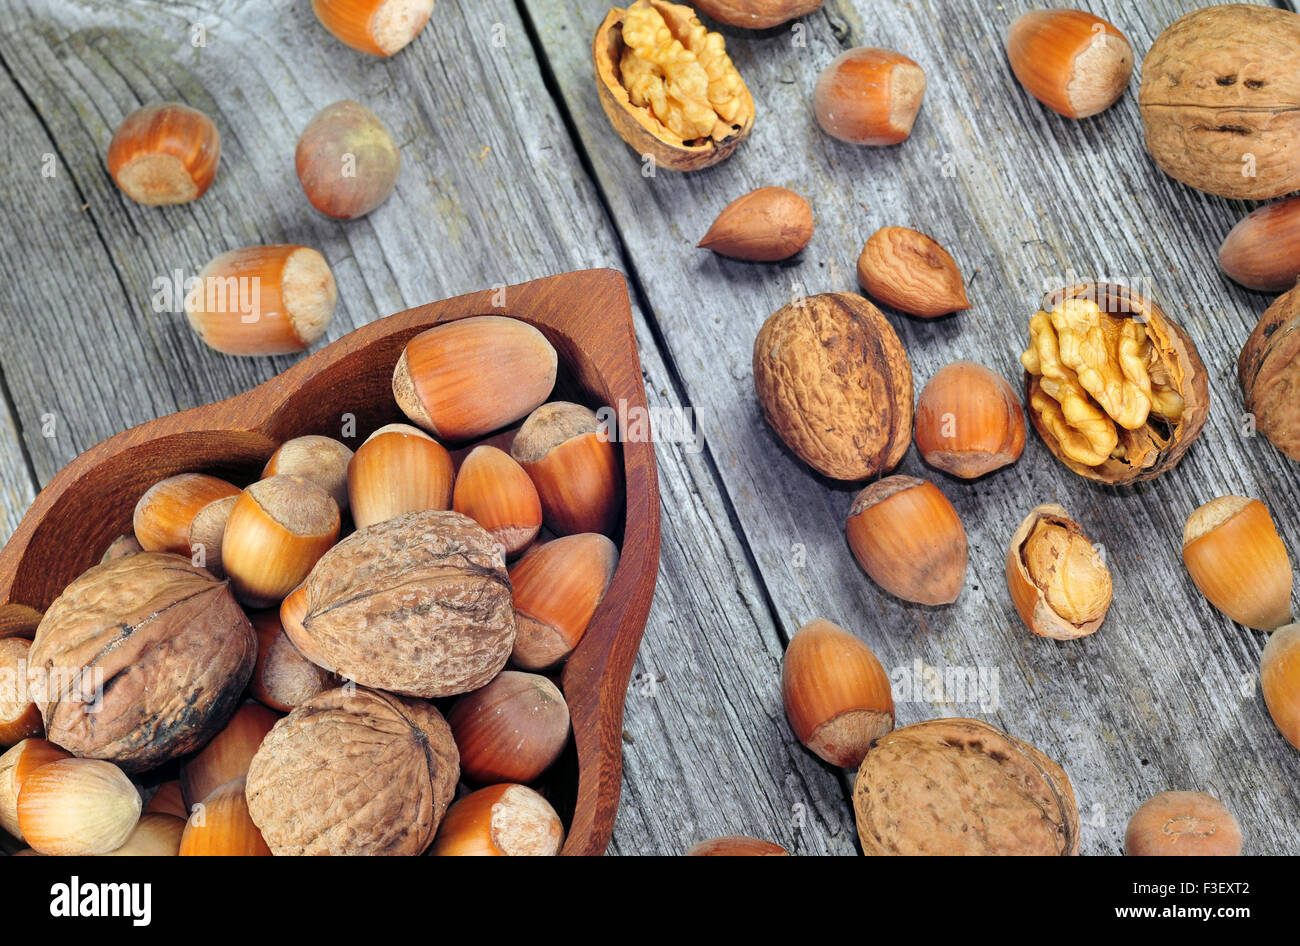 Hazelnuts and walnuts on a wooden table - Stock Image